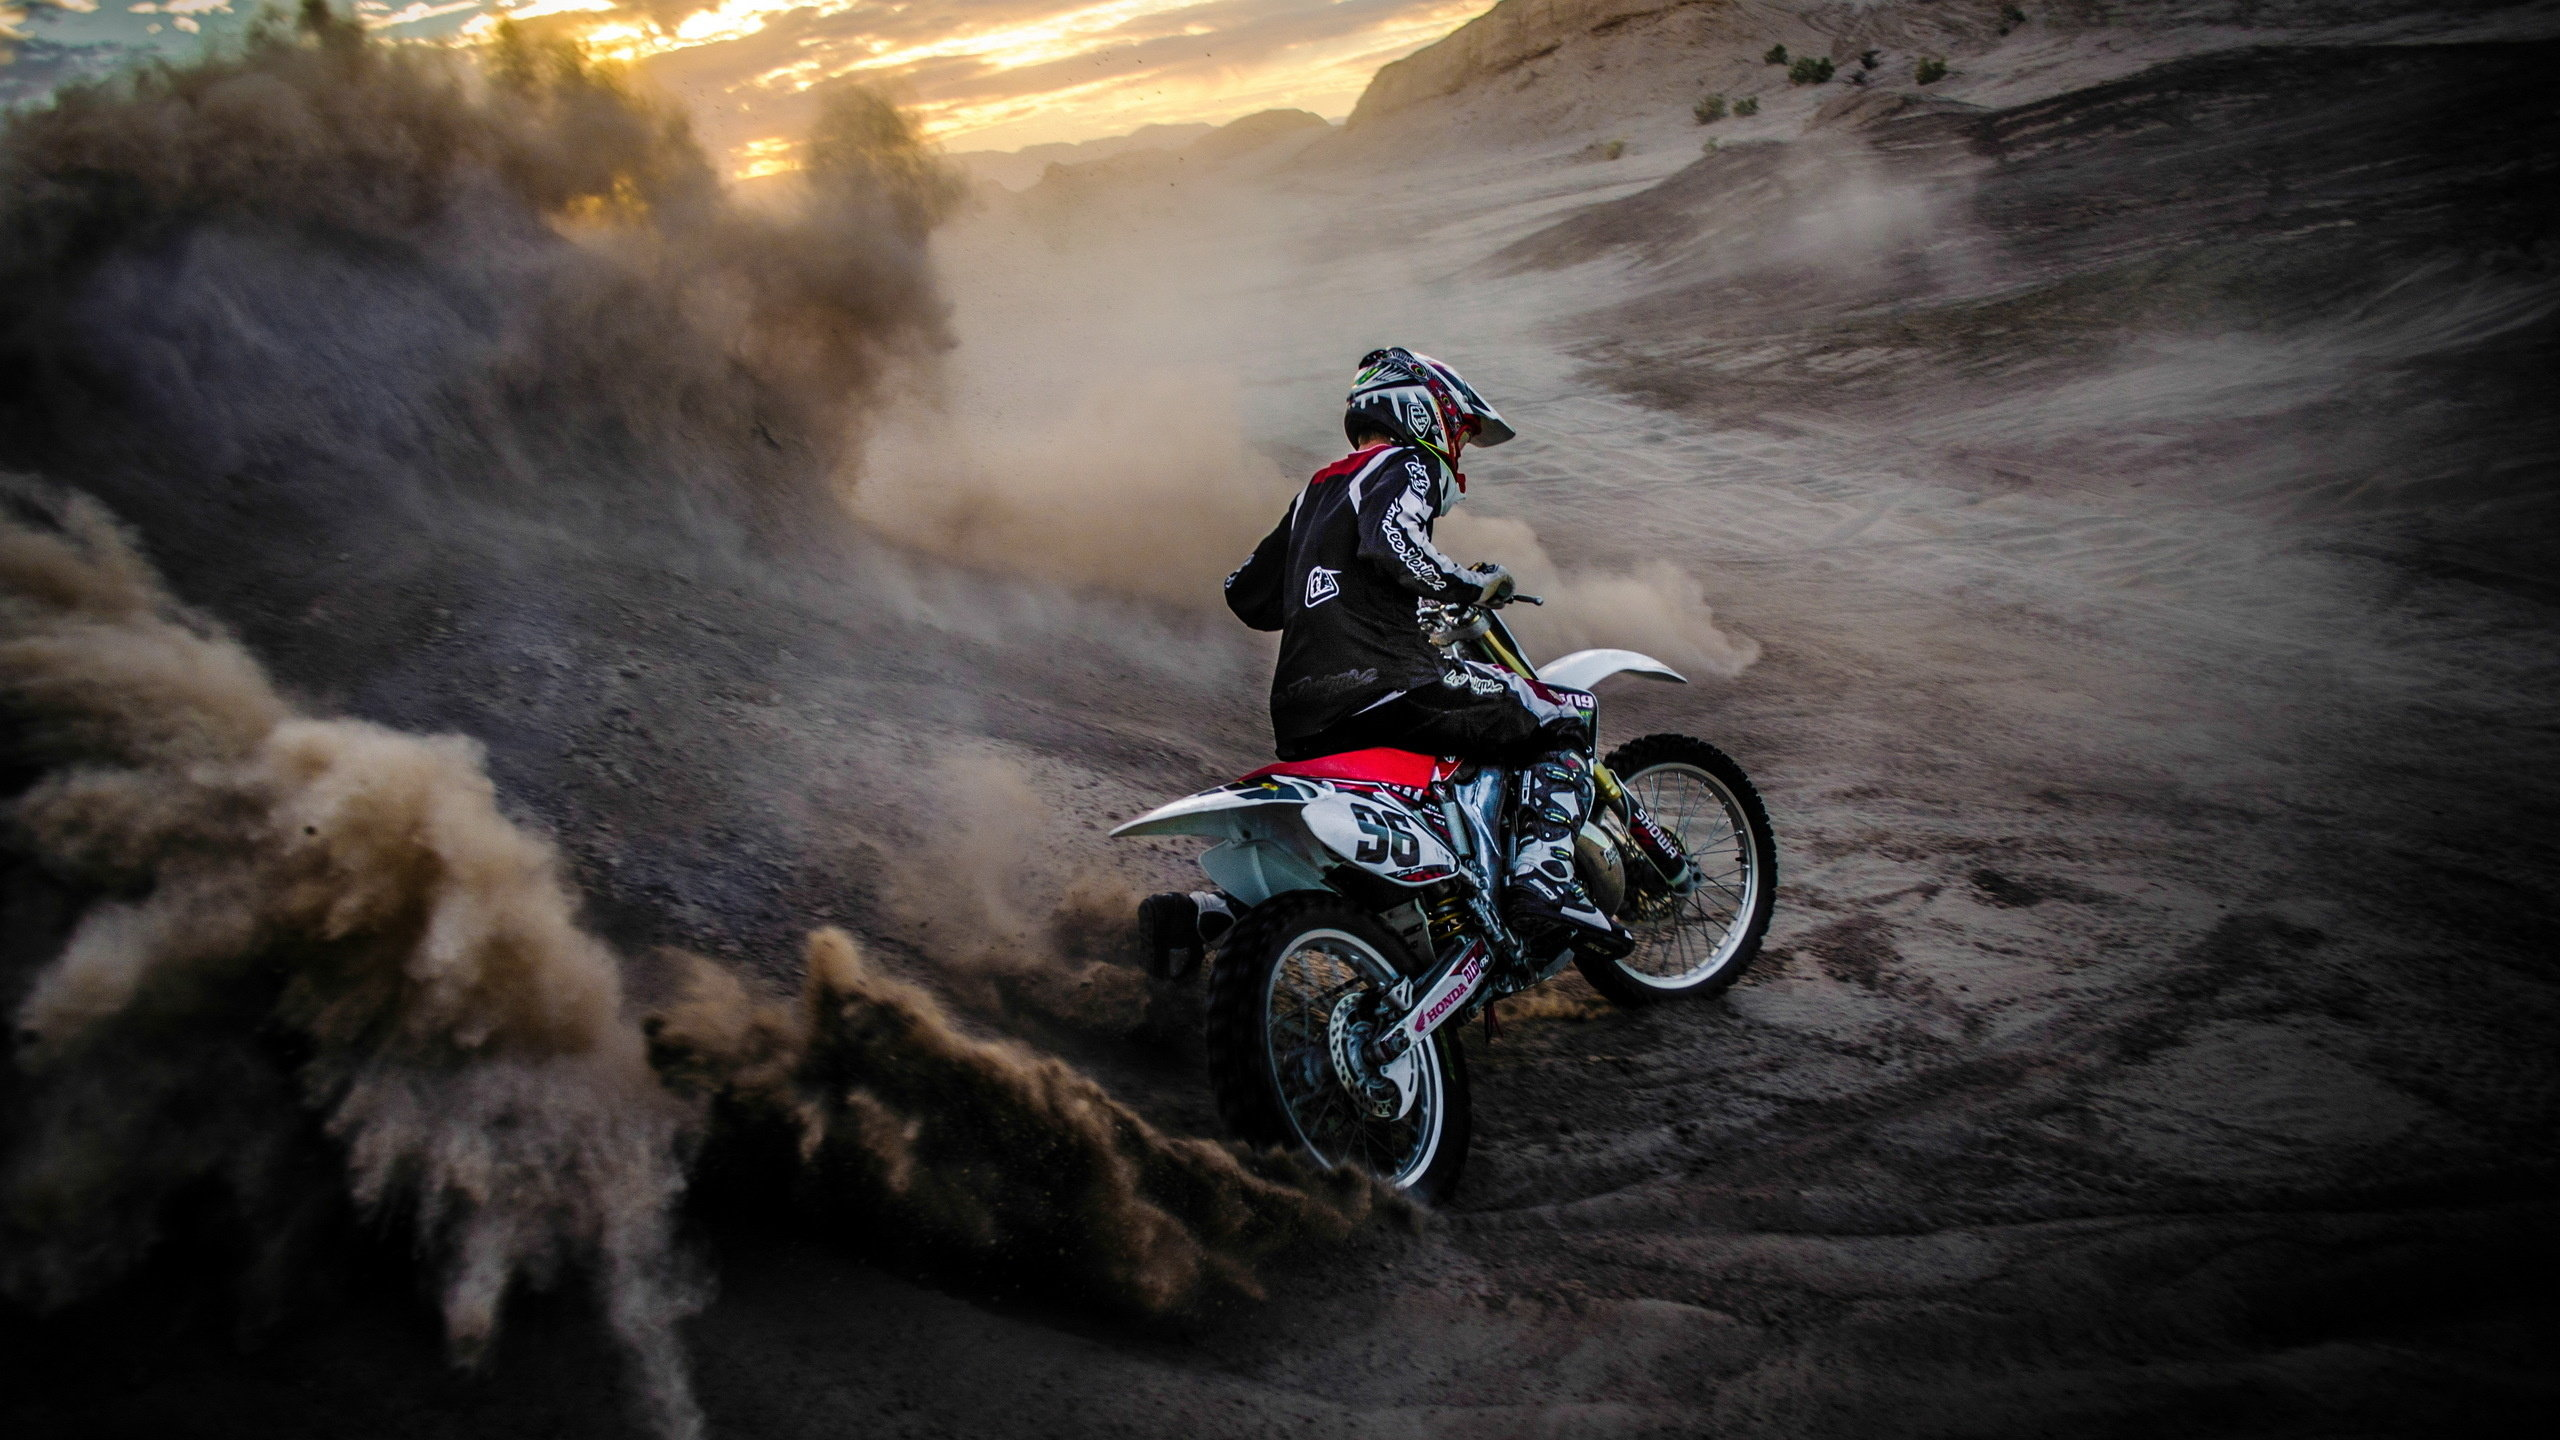 Free Download Motocross Dirt Bike Wallpaper Id378406 Hd